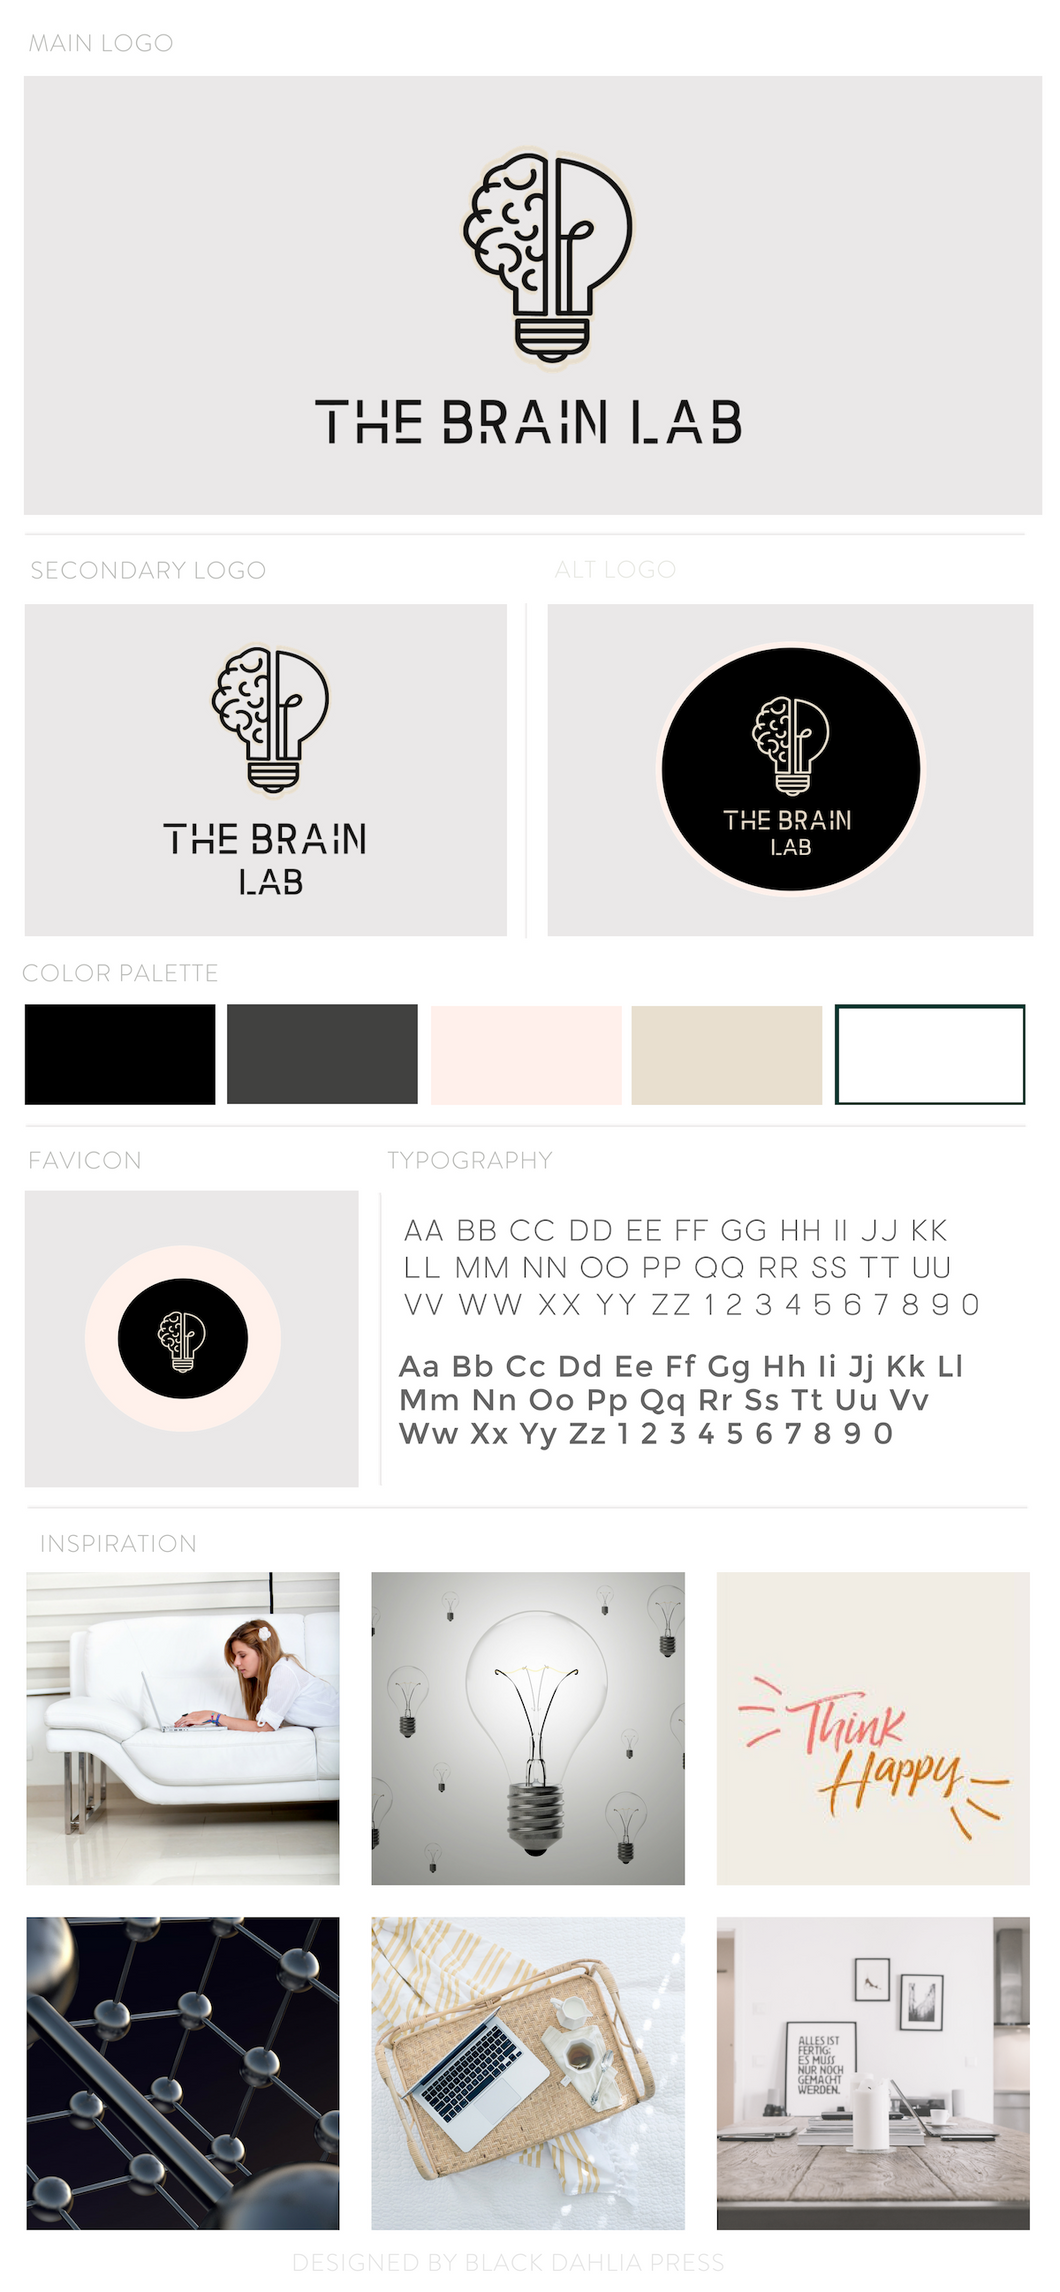 The Brain Lab Pre-made Brand